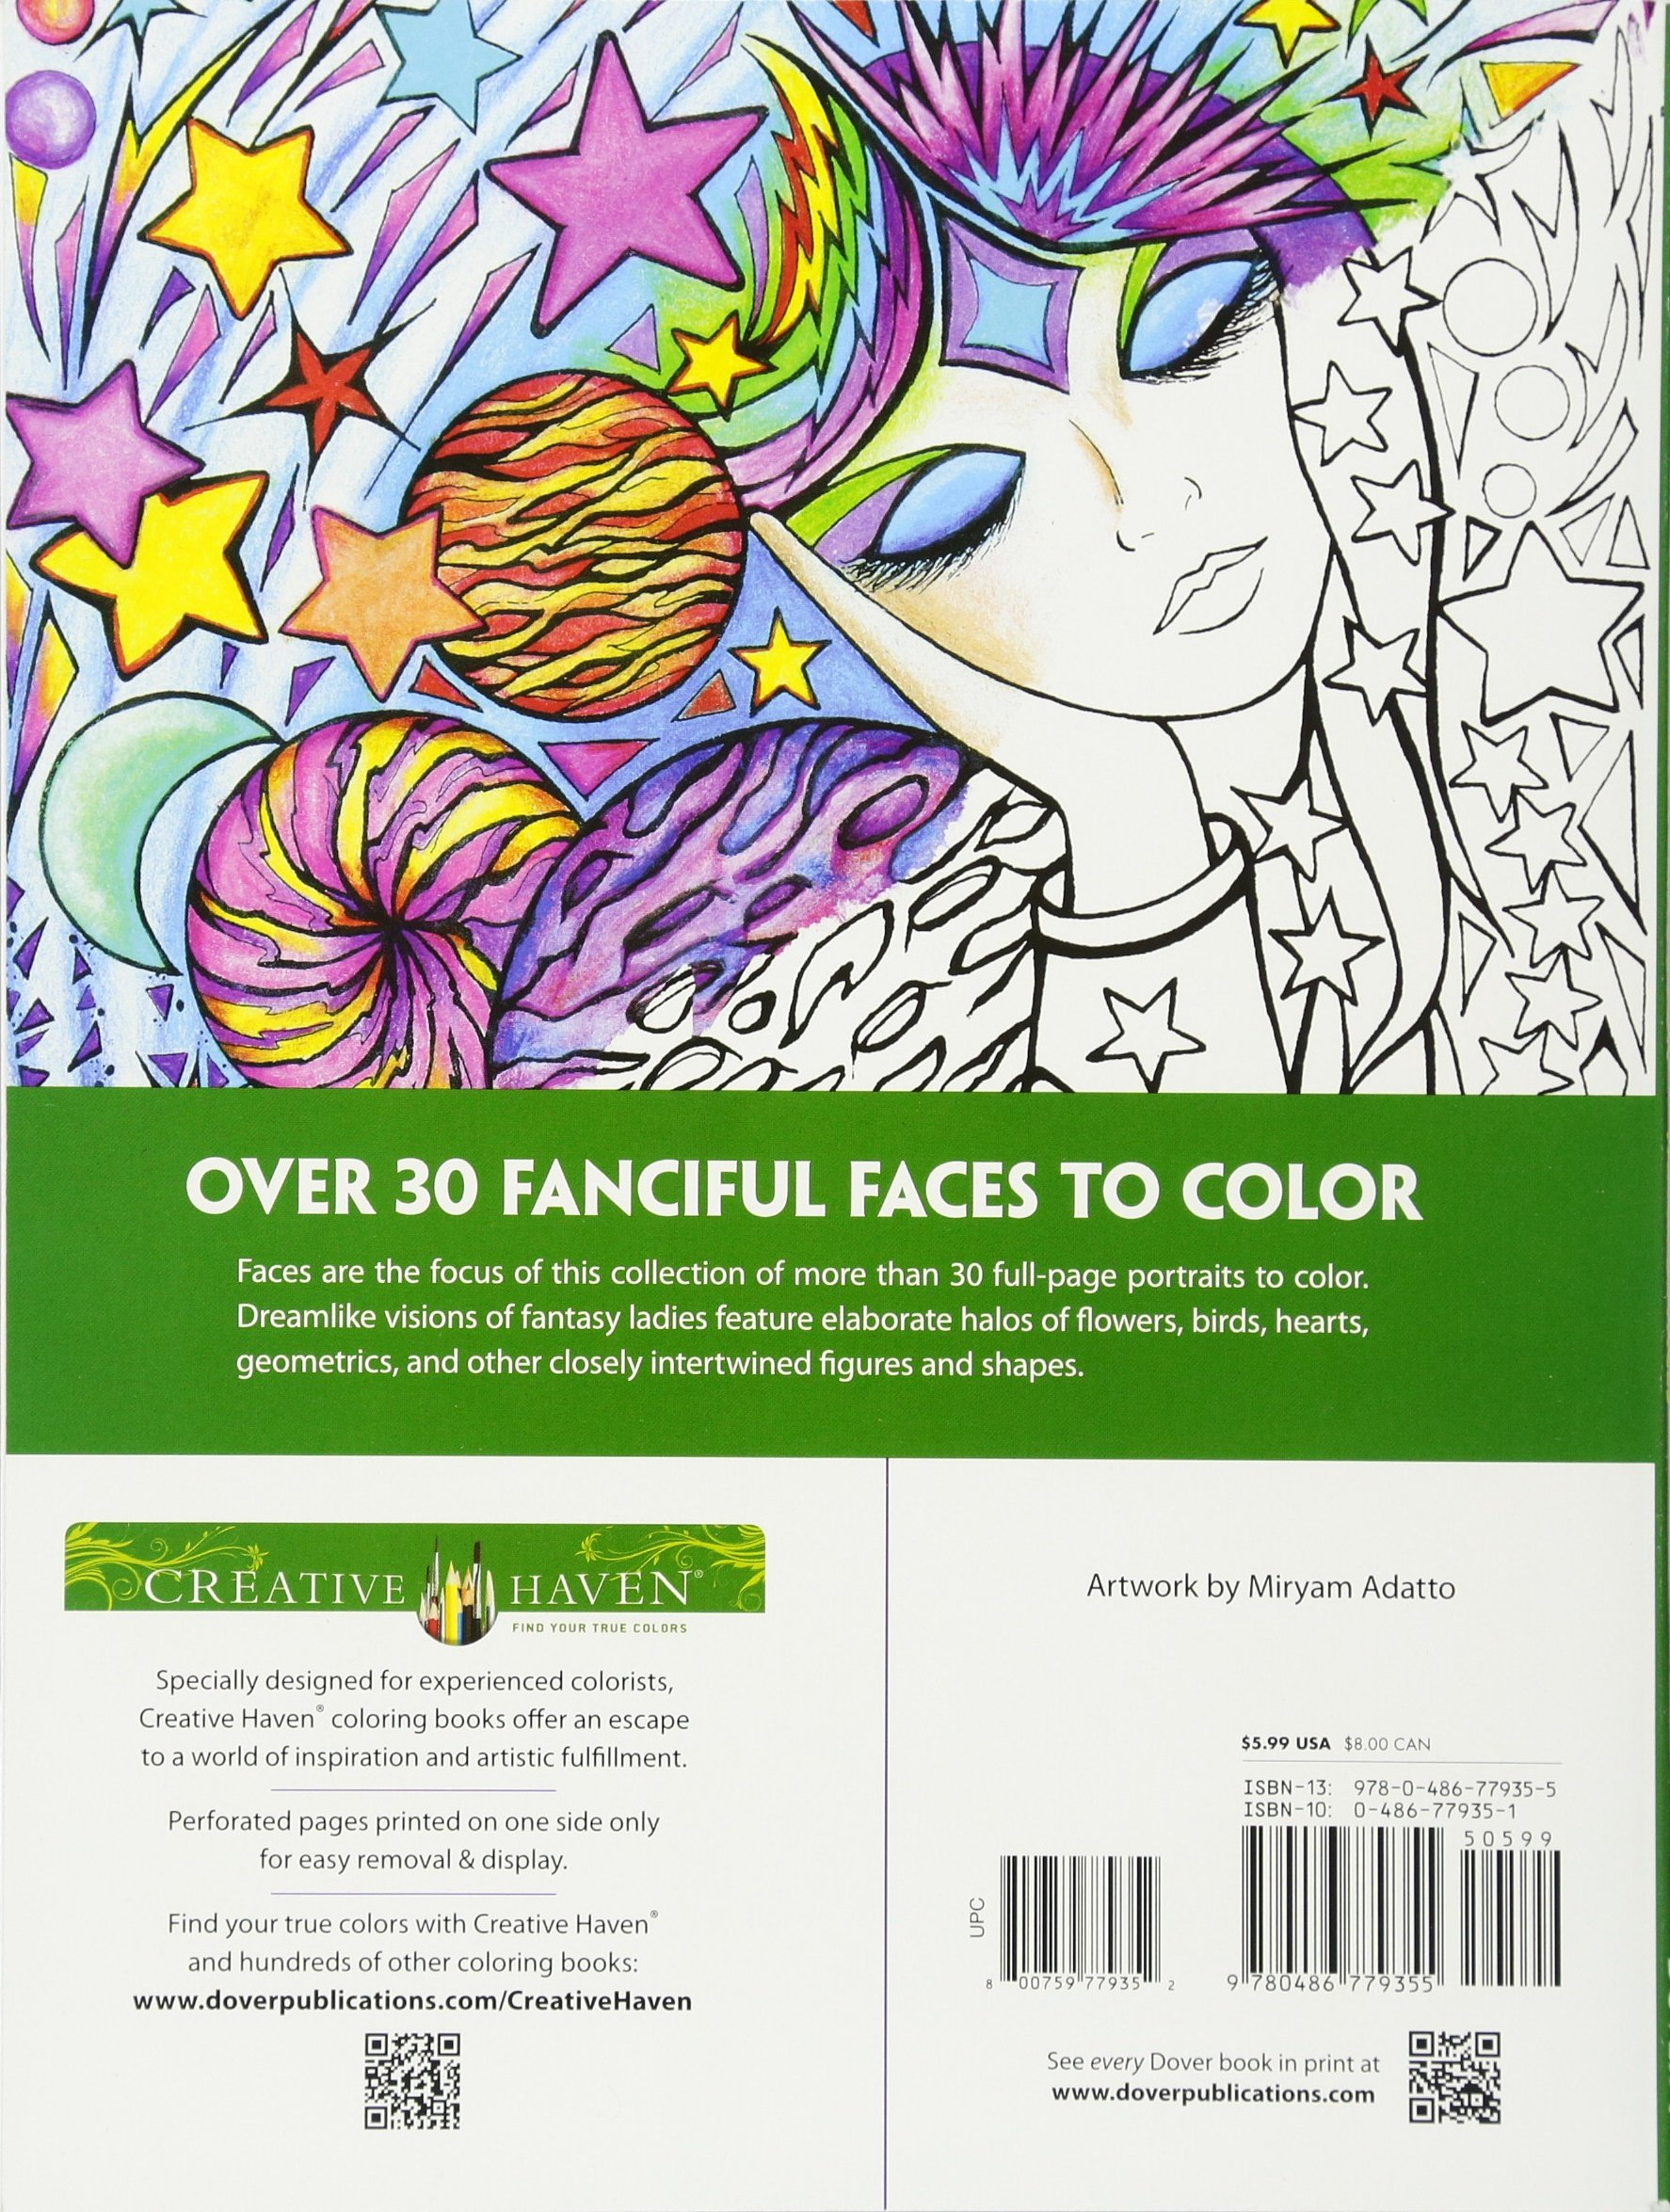 Fanciful Faces Coloring Book Creative Haven Miryam Adatto 9780486779355 Amazon Books